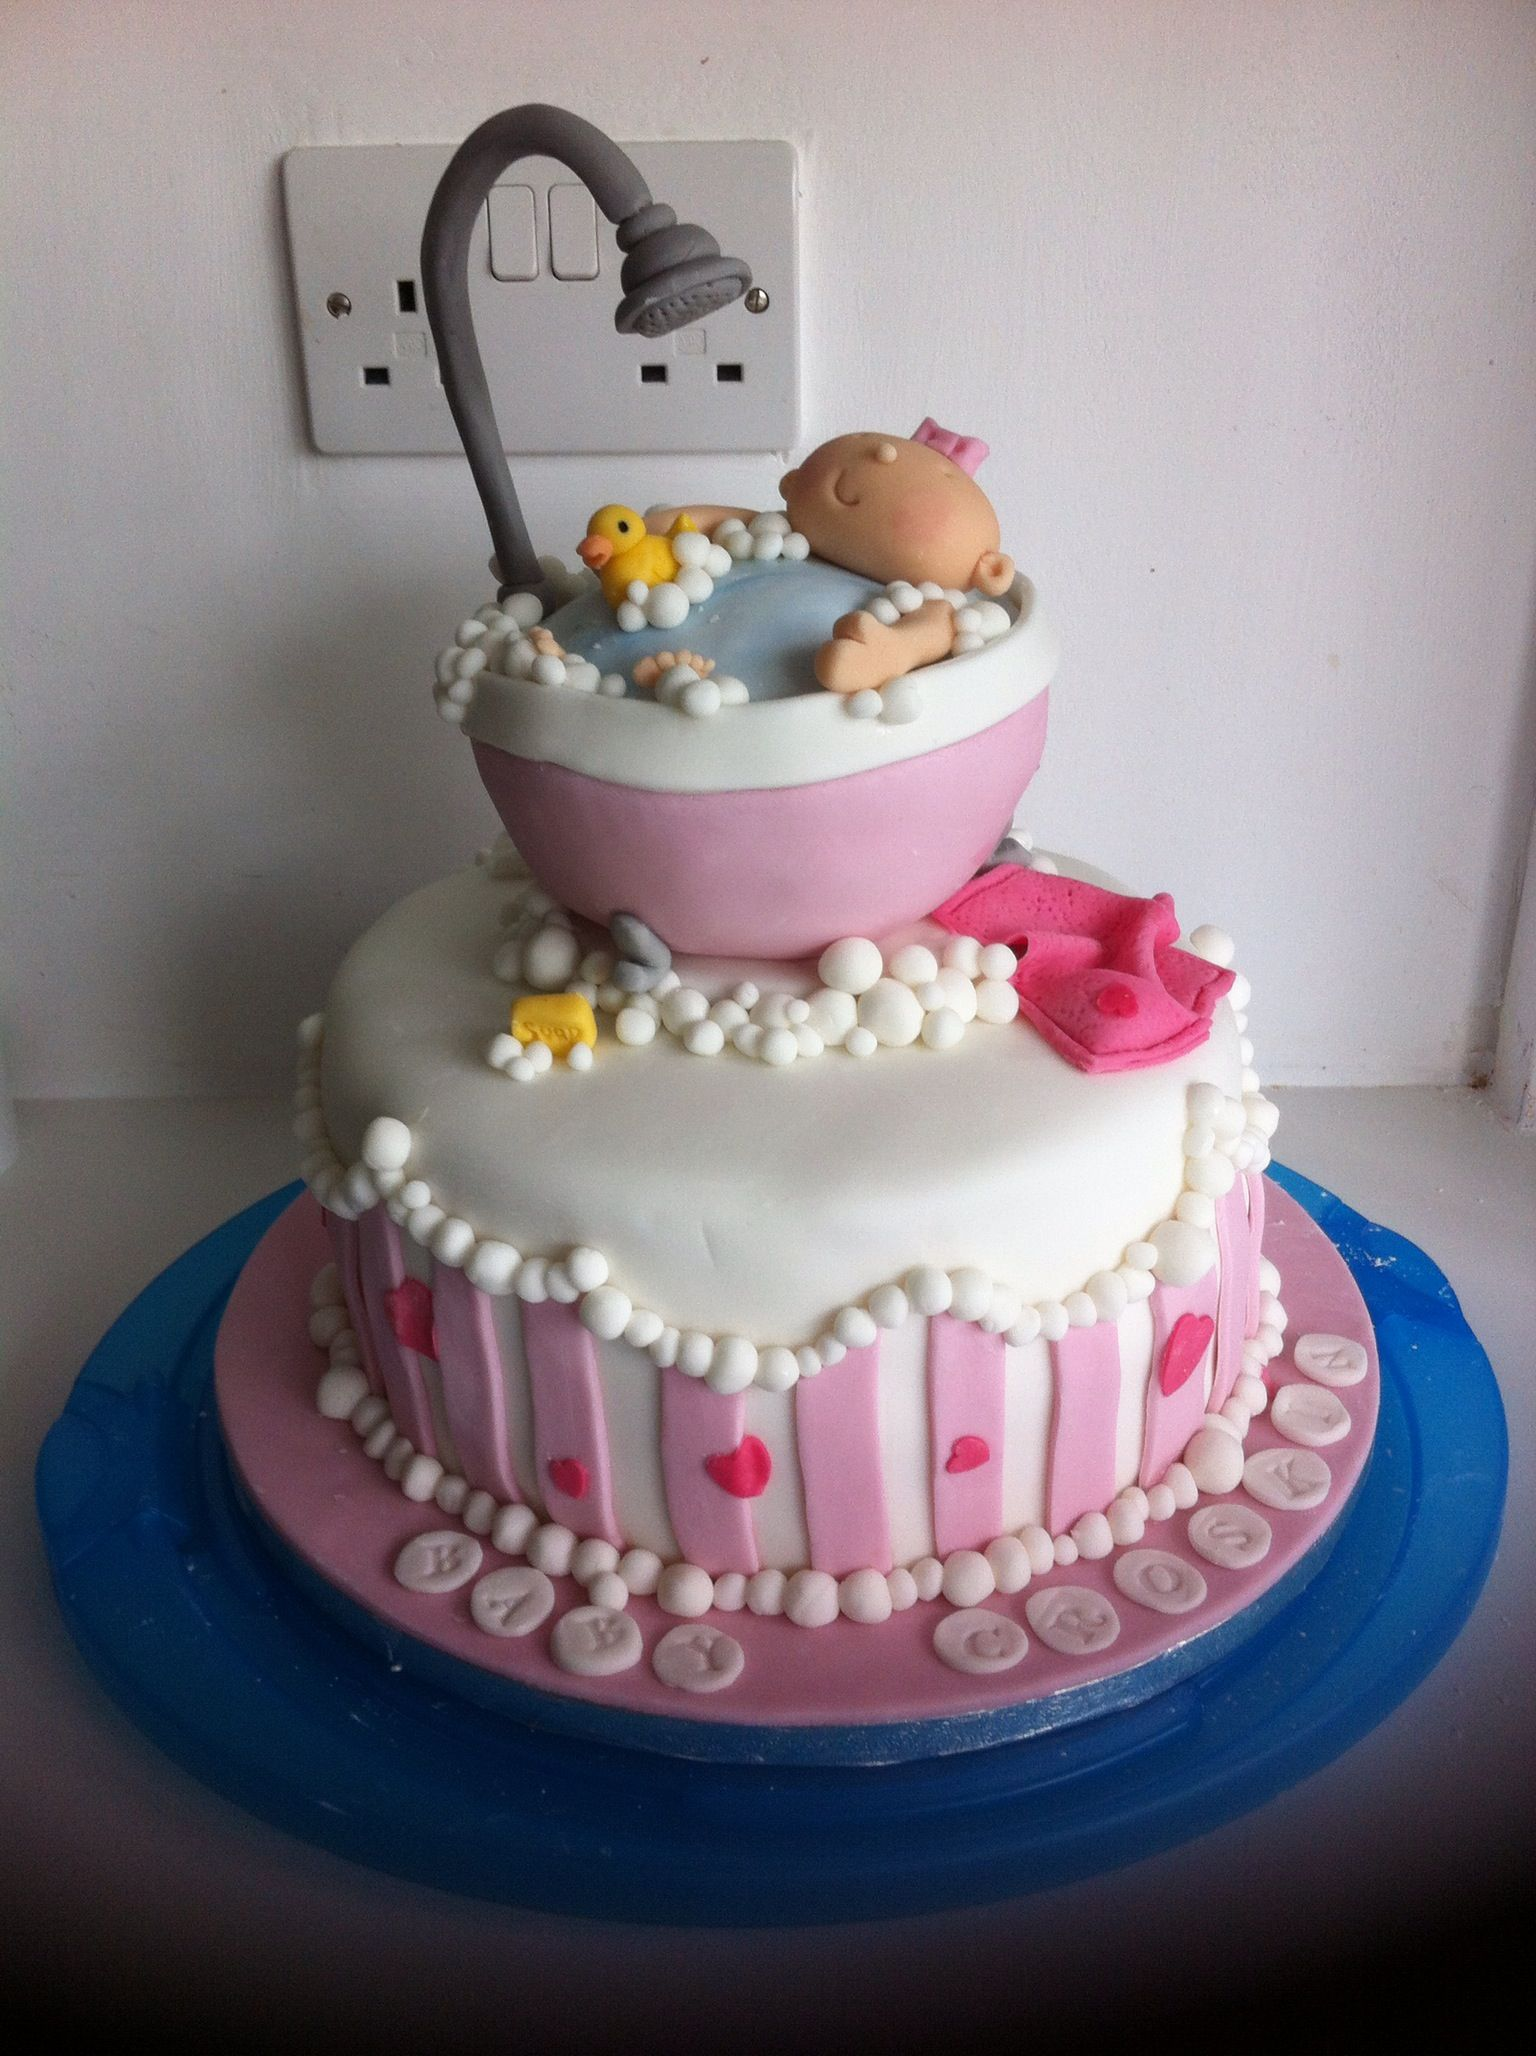 Baby bath tub shower cake | Cakes and sweets | Pinterest | Shower ...